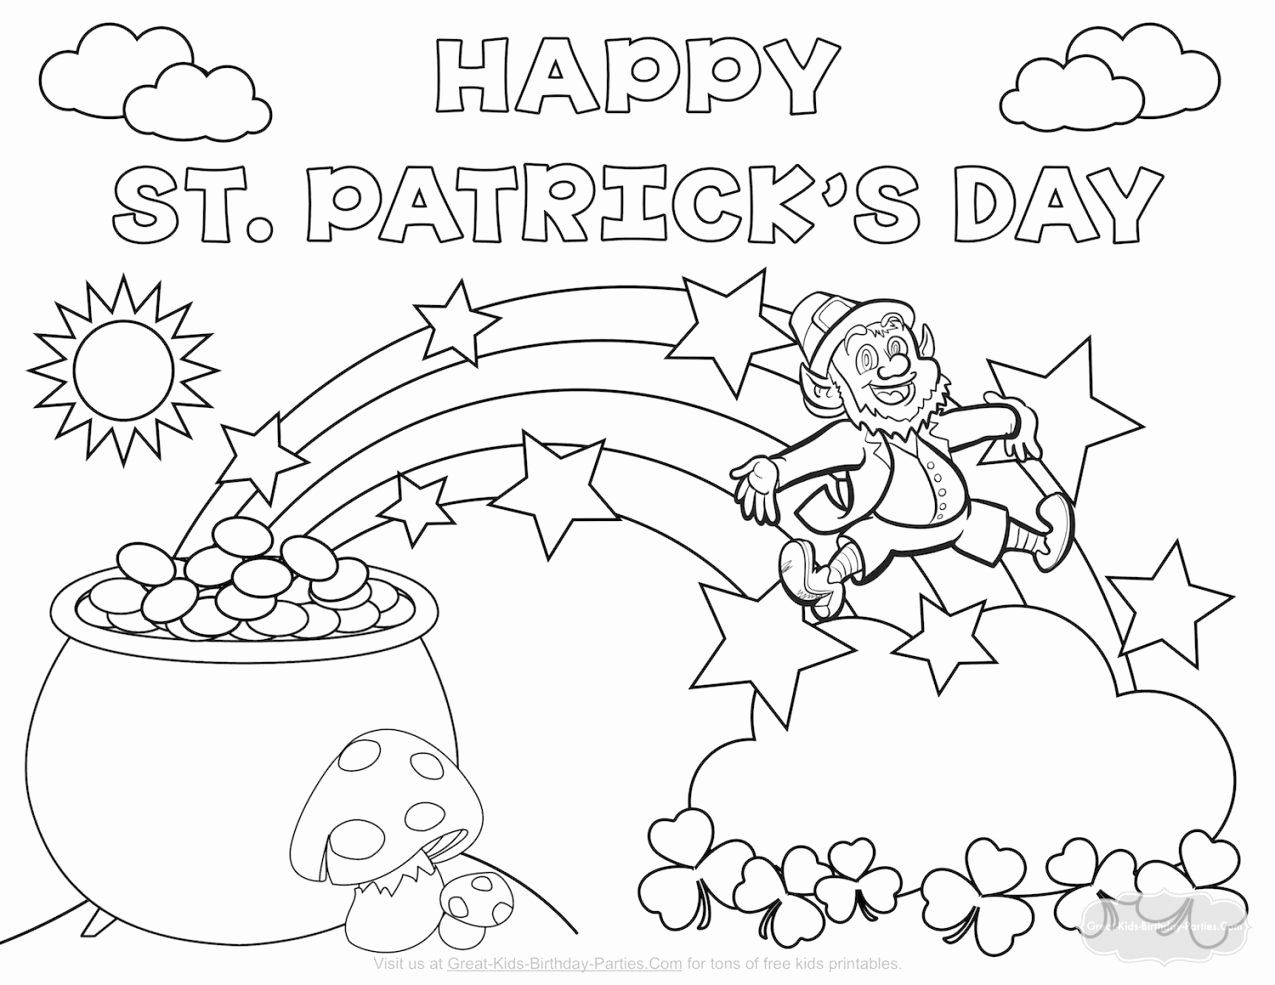 Free St Patricks Day Coloring Pages in 2020